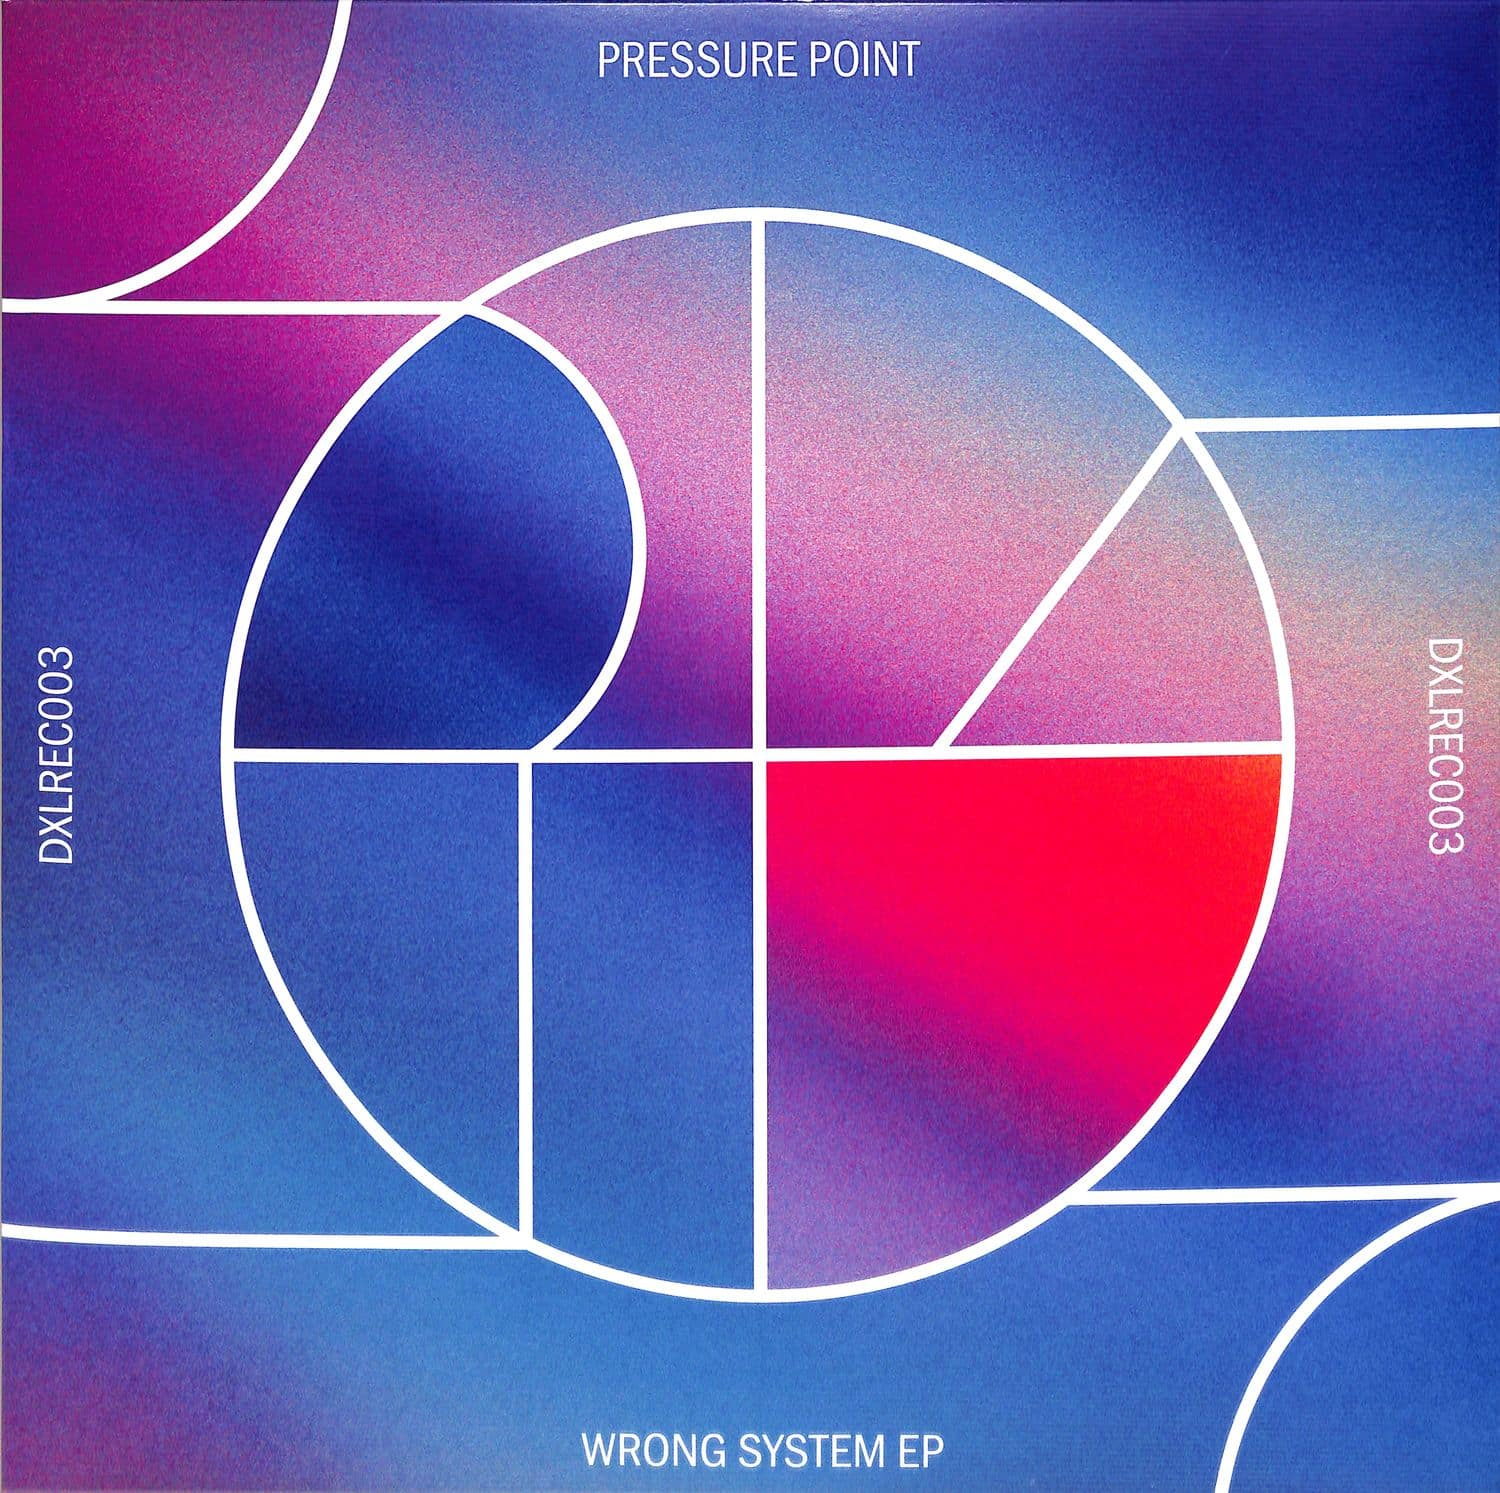 Pressure Point - WRONG SYSTEM EP